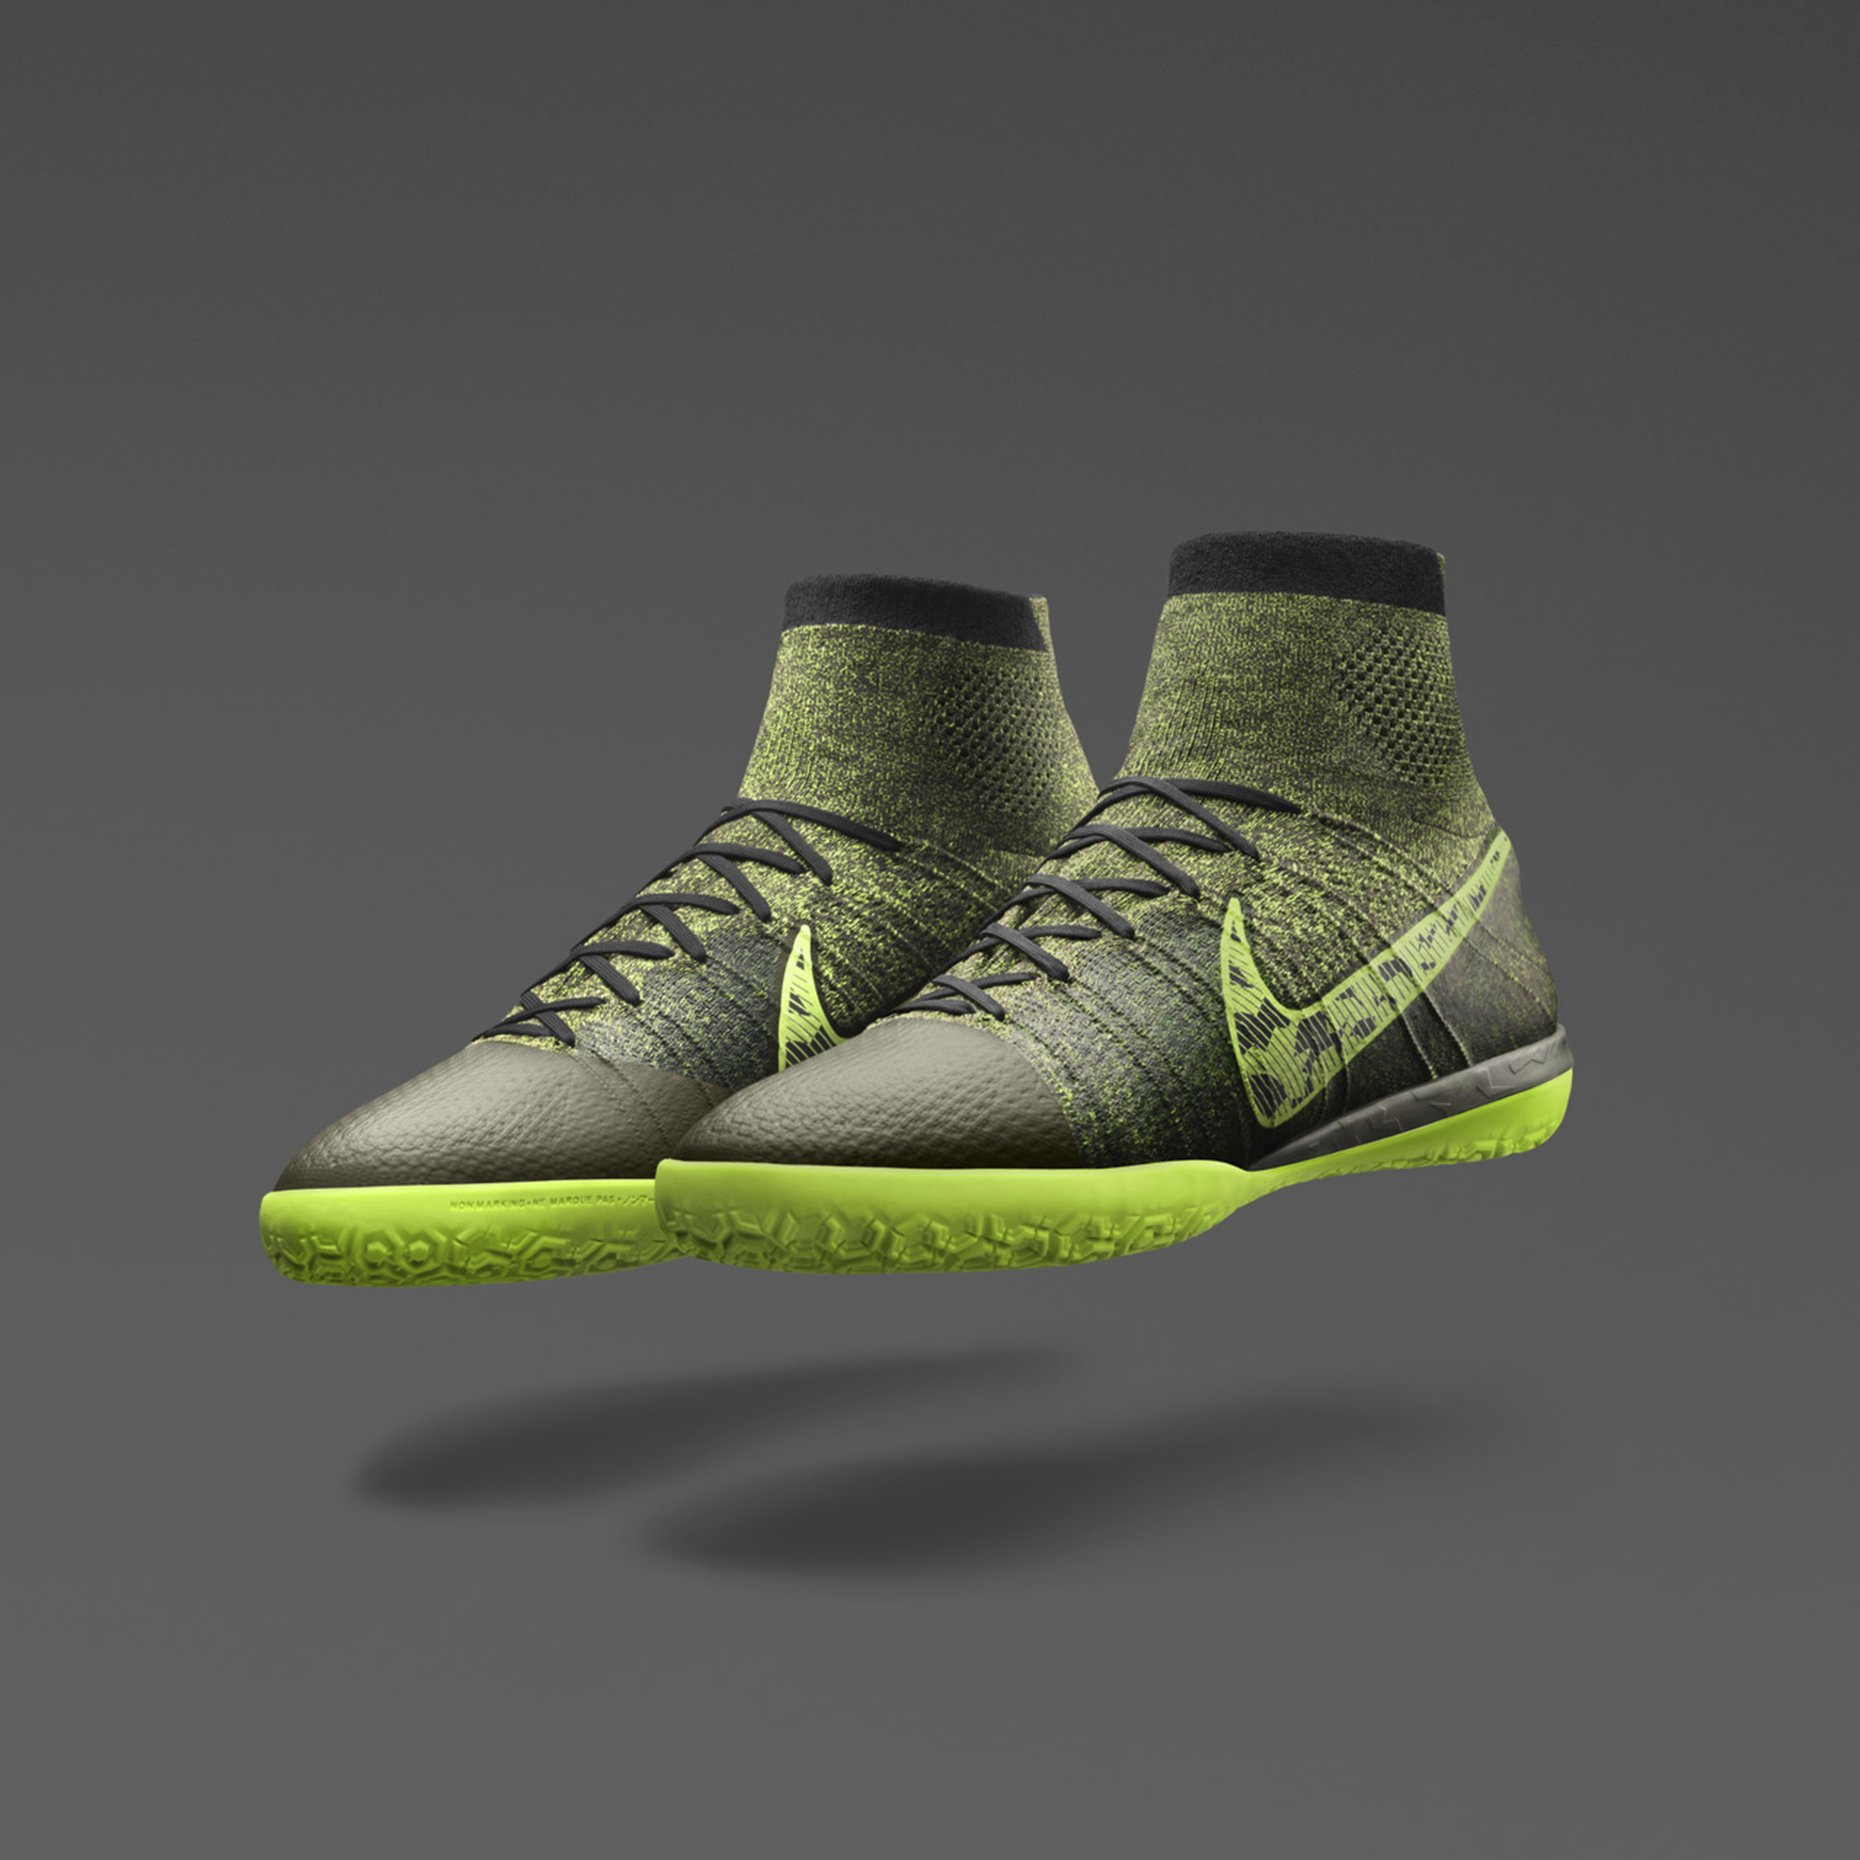 d0952c225628c ... promo code for new zealand click to enlarge image nike elastico  superfly ic midnight fog b4caa